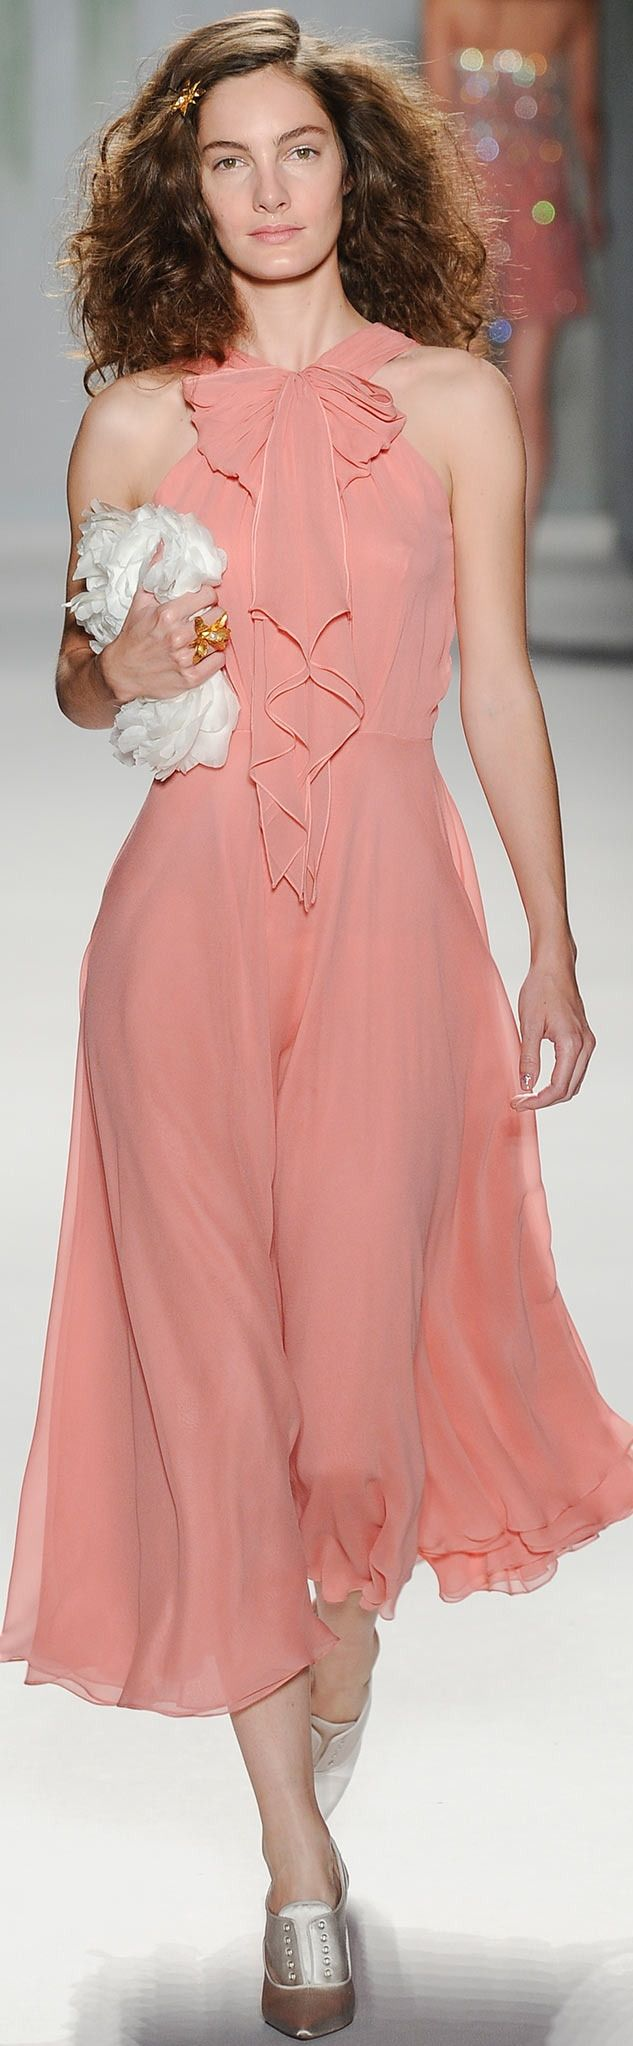 Runway: Jenny Packham Spring 2014 RTW Collection